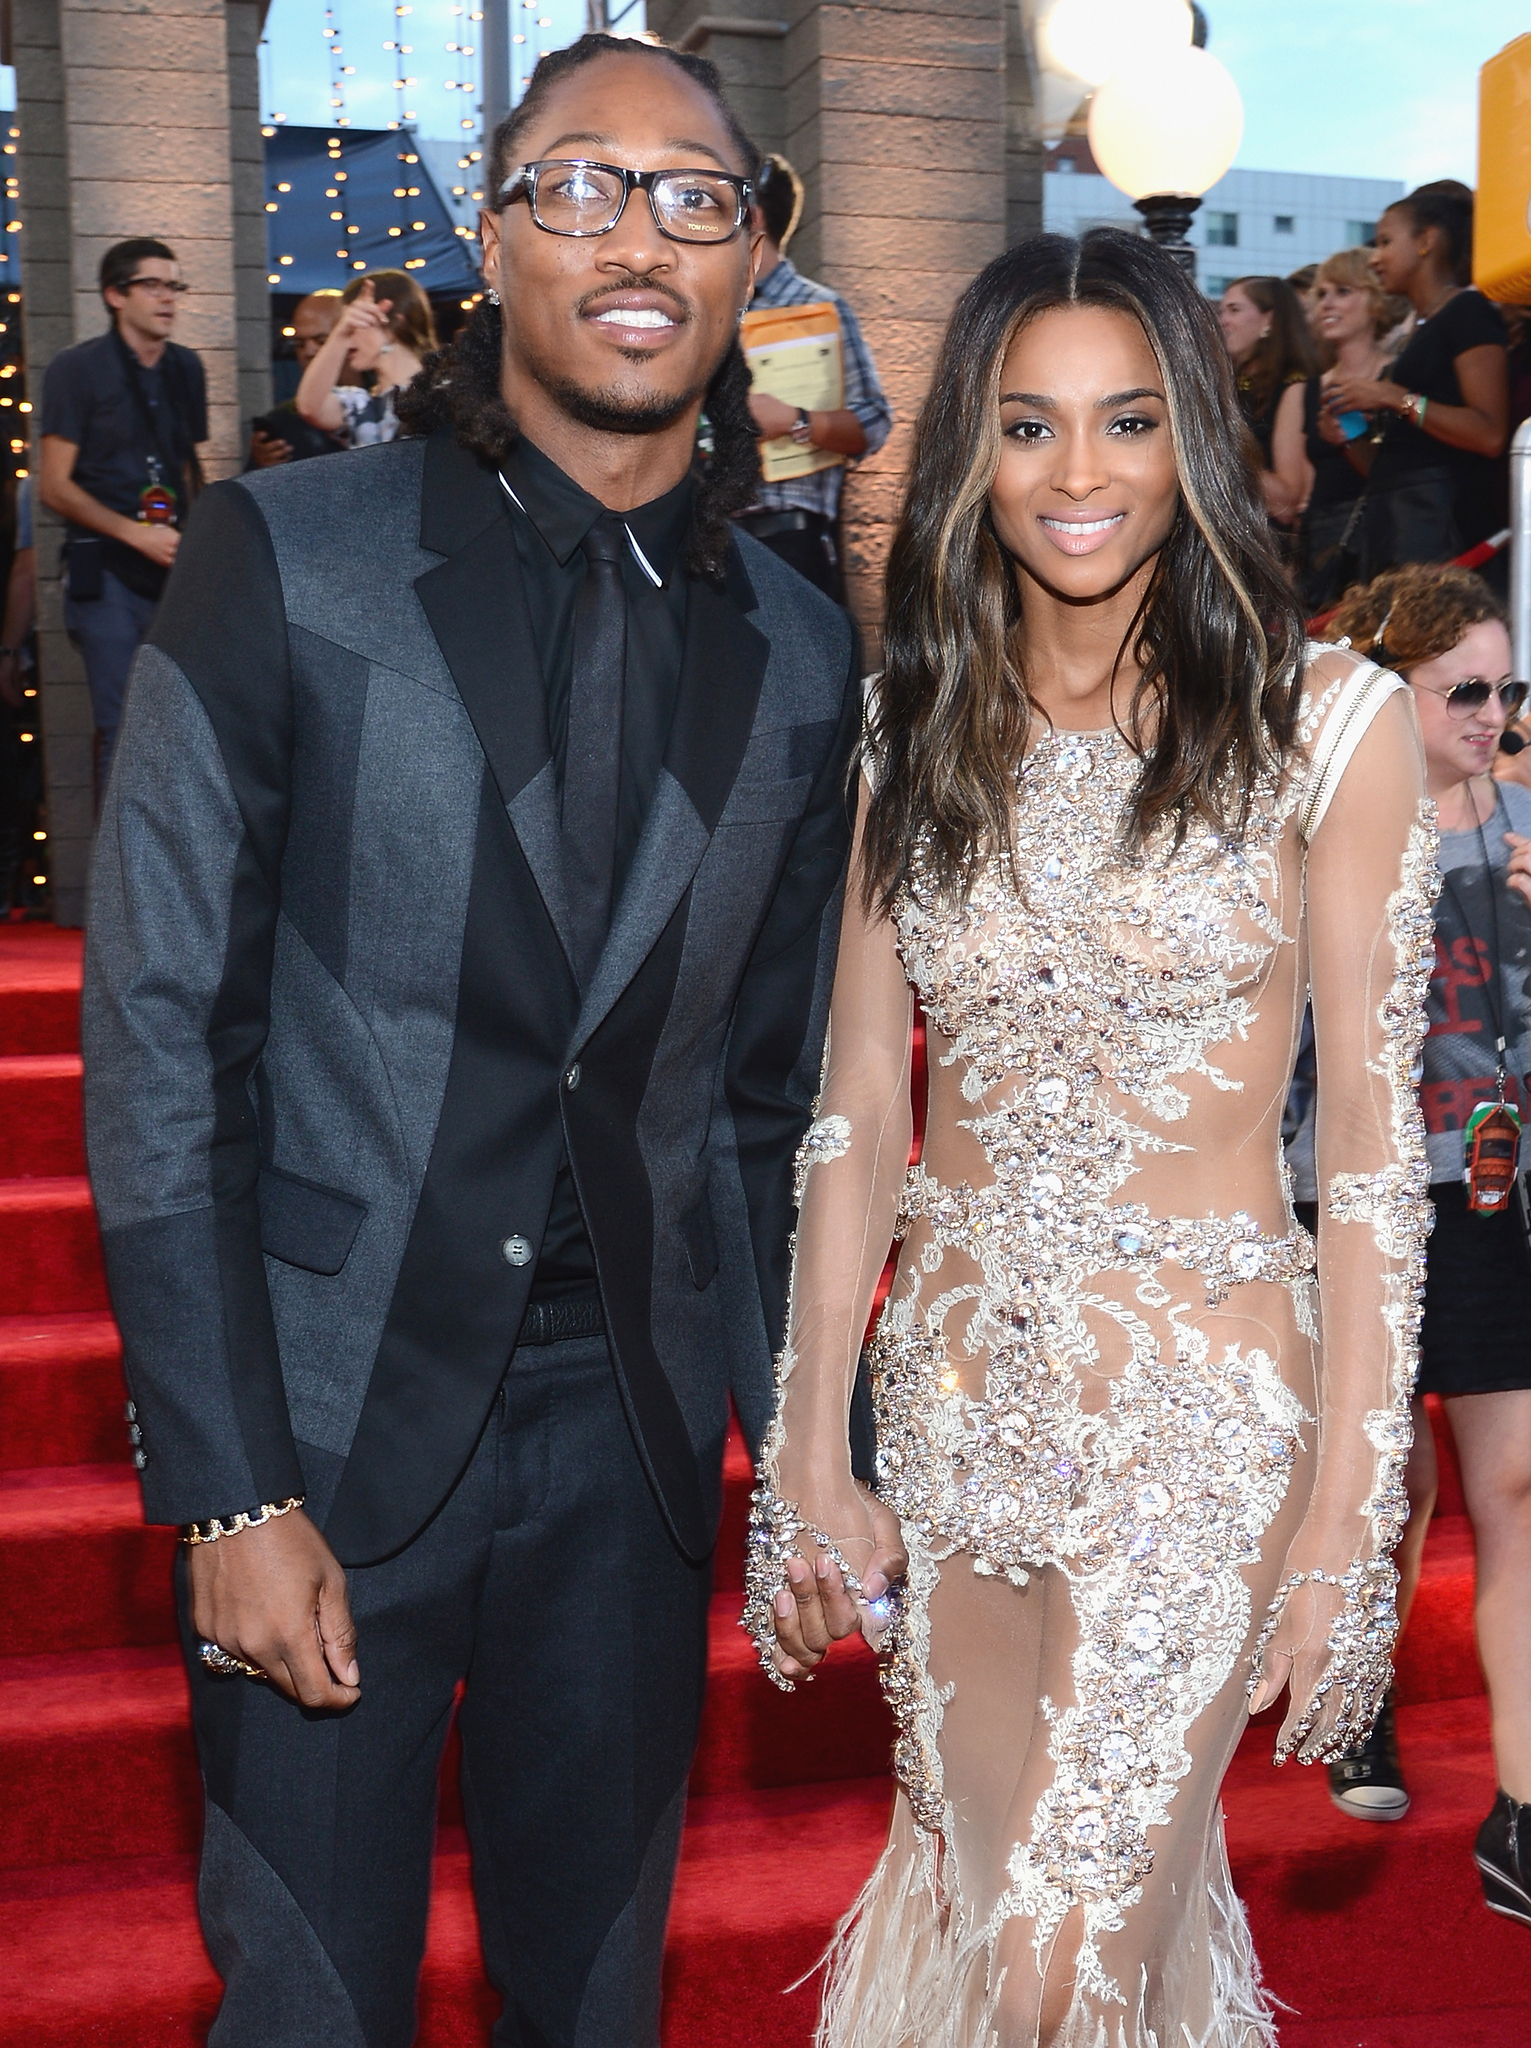 Future and Ciara at the MTV VMAs. (Getty Images)